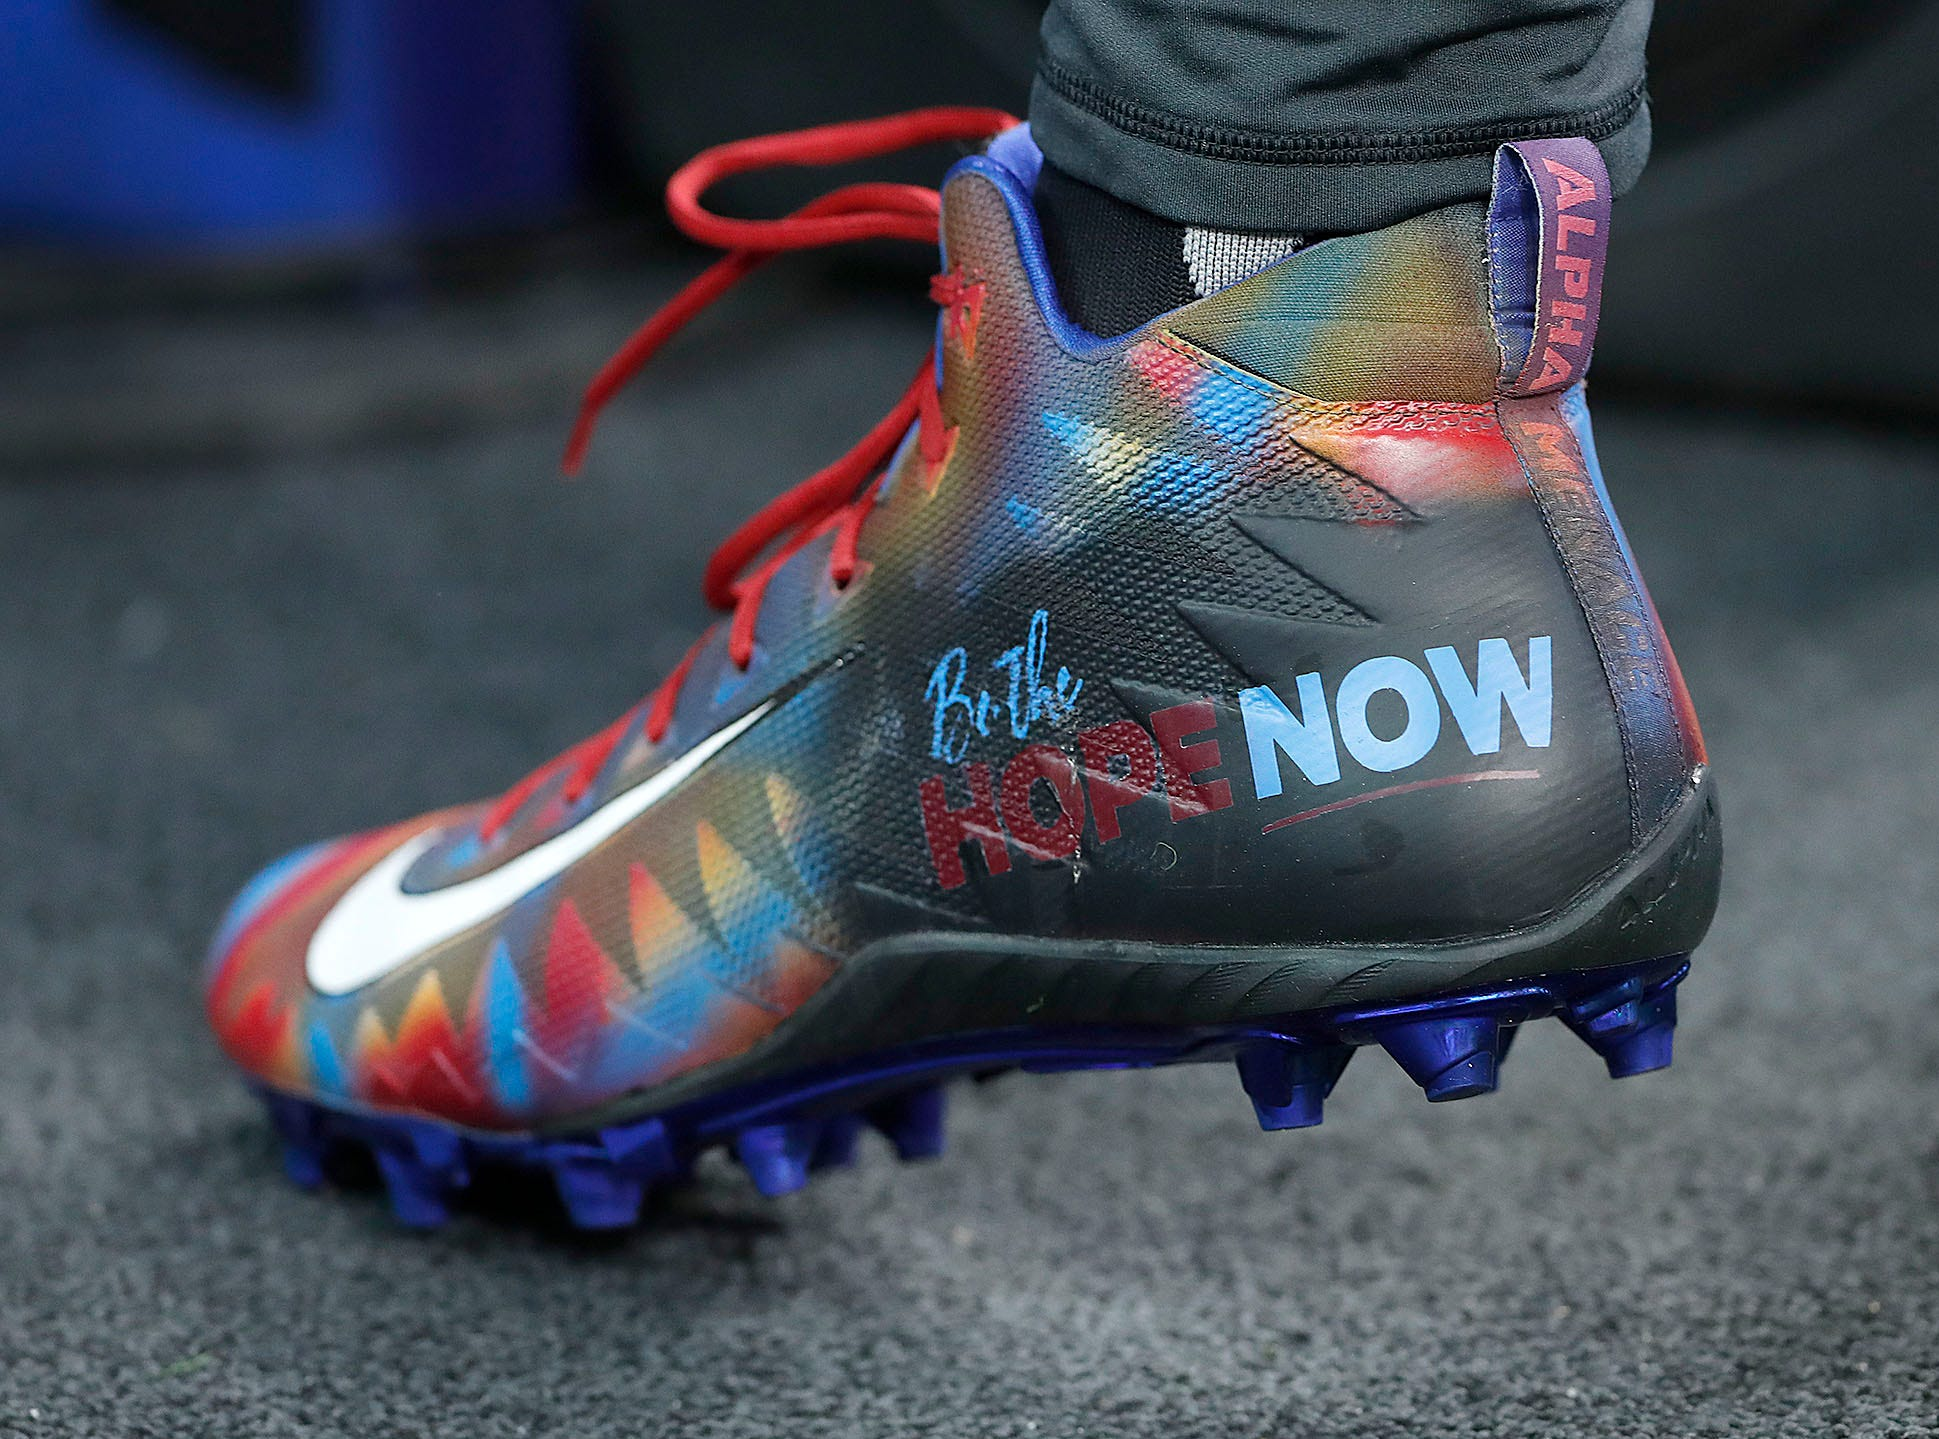 Indianapolis Colts quarterback Andrew Luck (12) and his My Cleats, My Cause before the start of their game against the Dallas Cowboys at Lucas Oil Stadium on Sunday, Dec. 16, 2018.